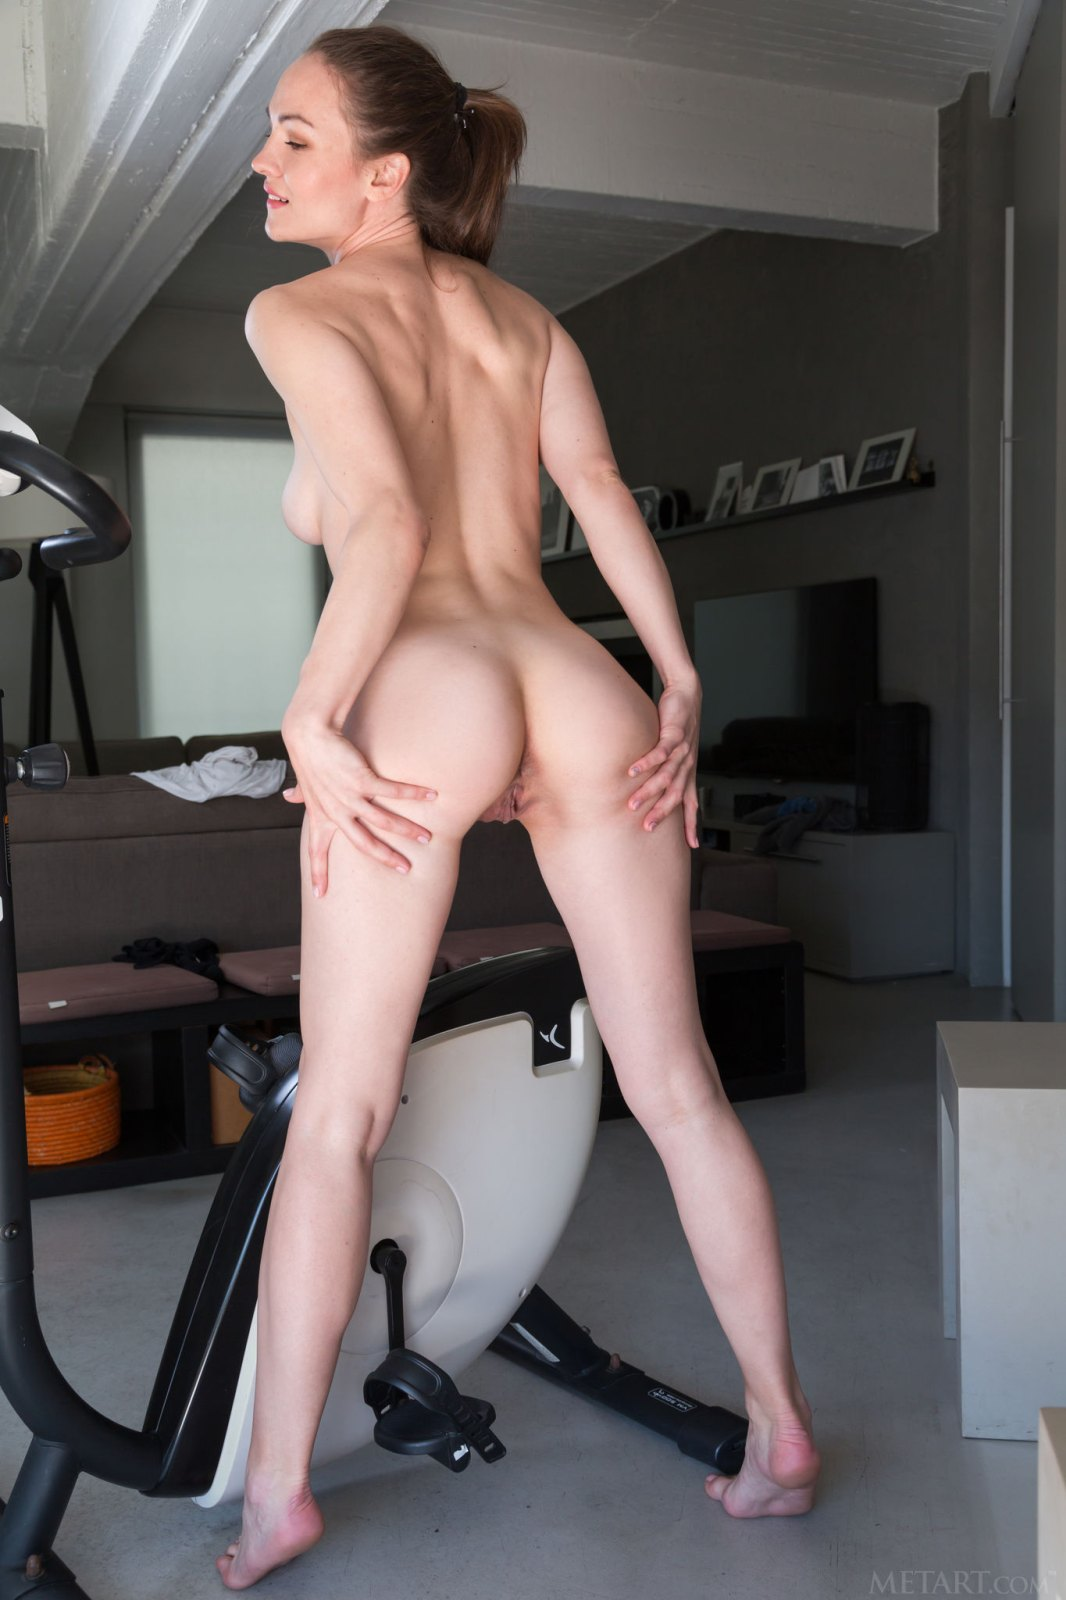 Tanya cooley naked pussy